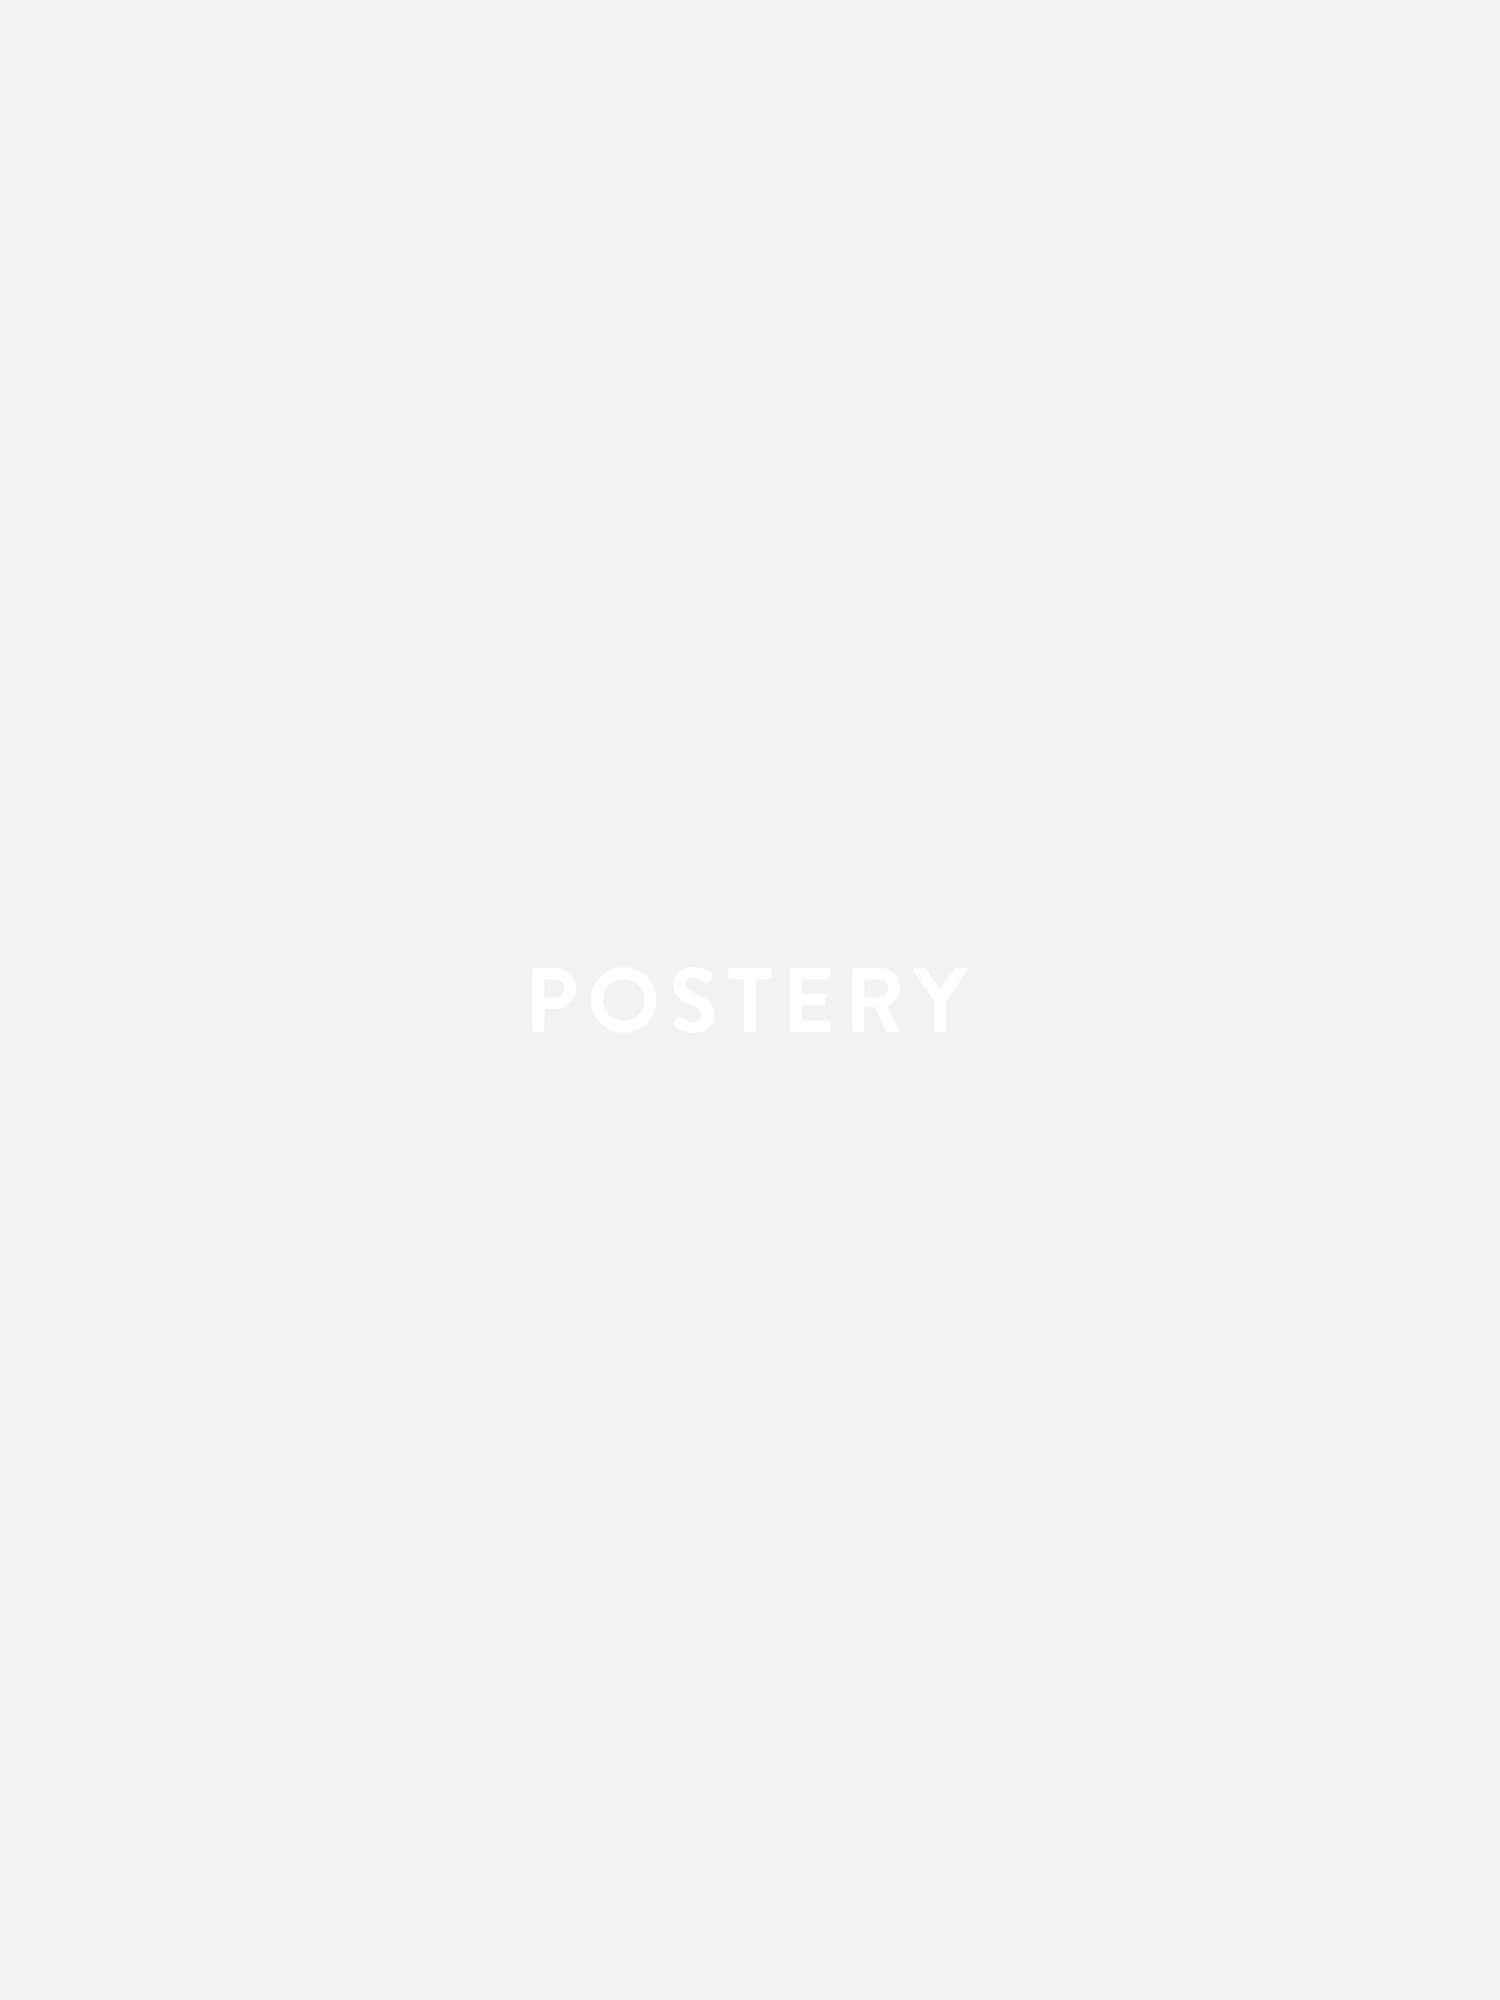 Little Snail Poster